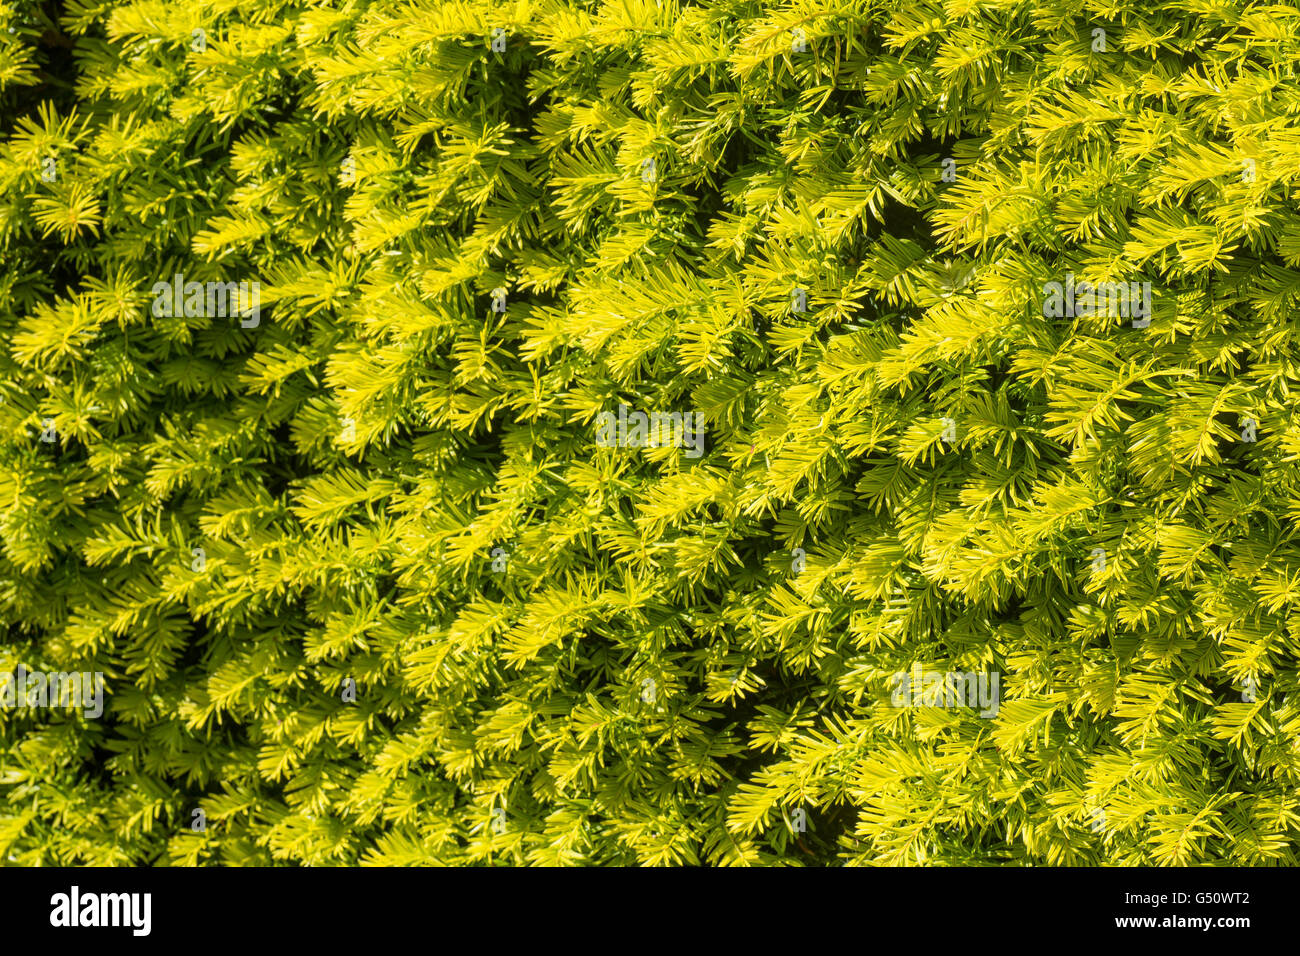 Lime green hedging makes an ideal privacy screen - Stock Image